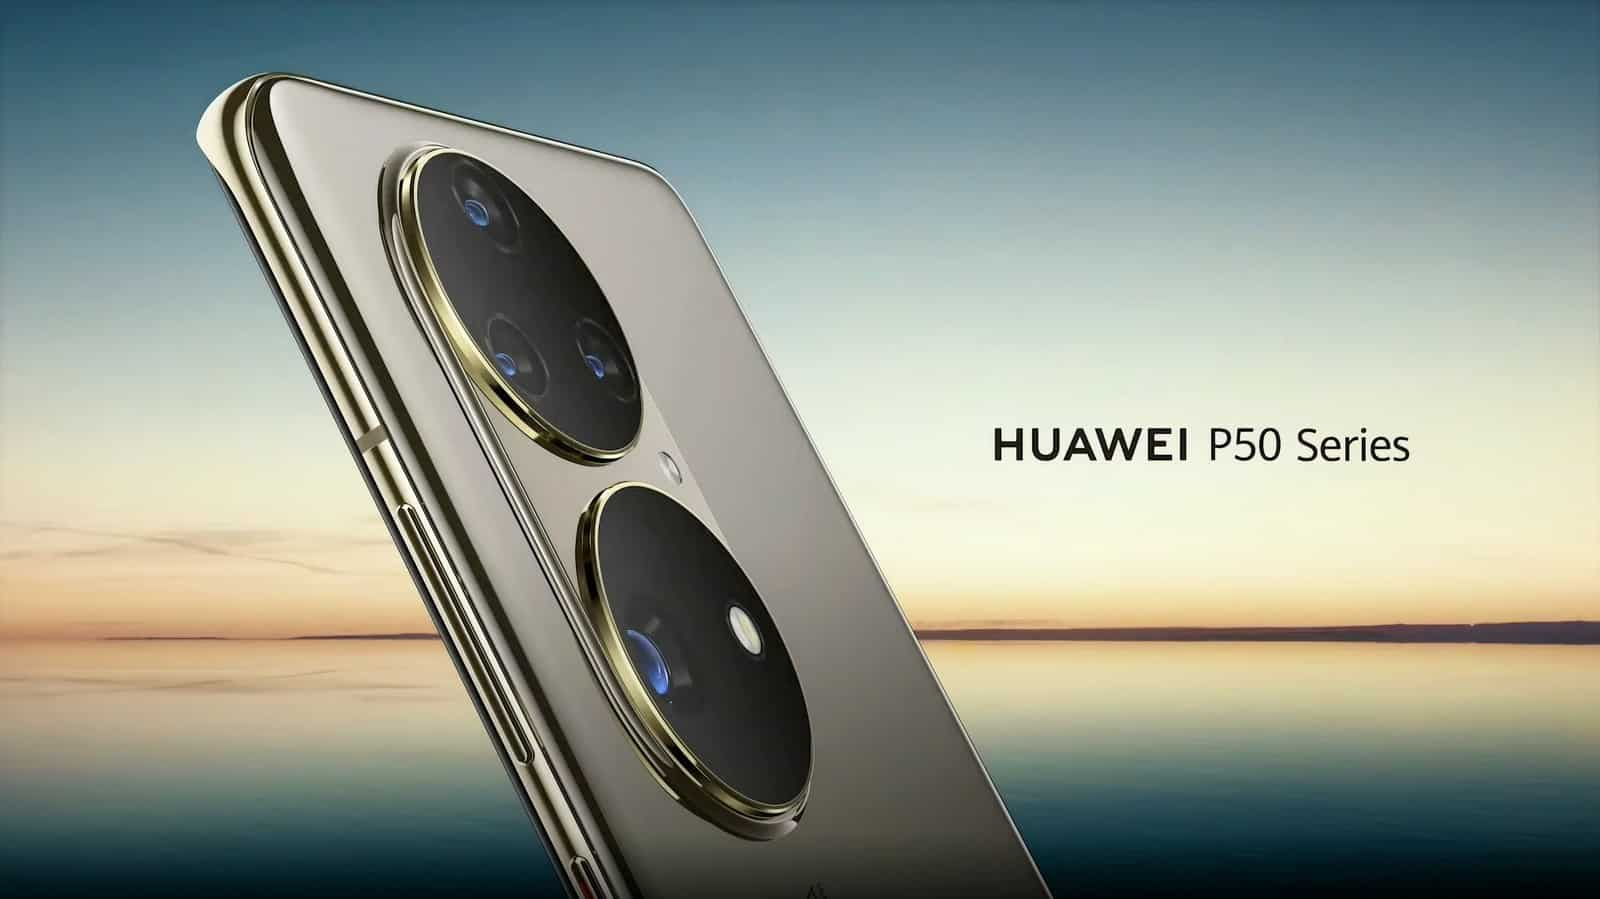 Huawei P50 first look